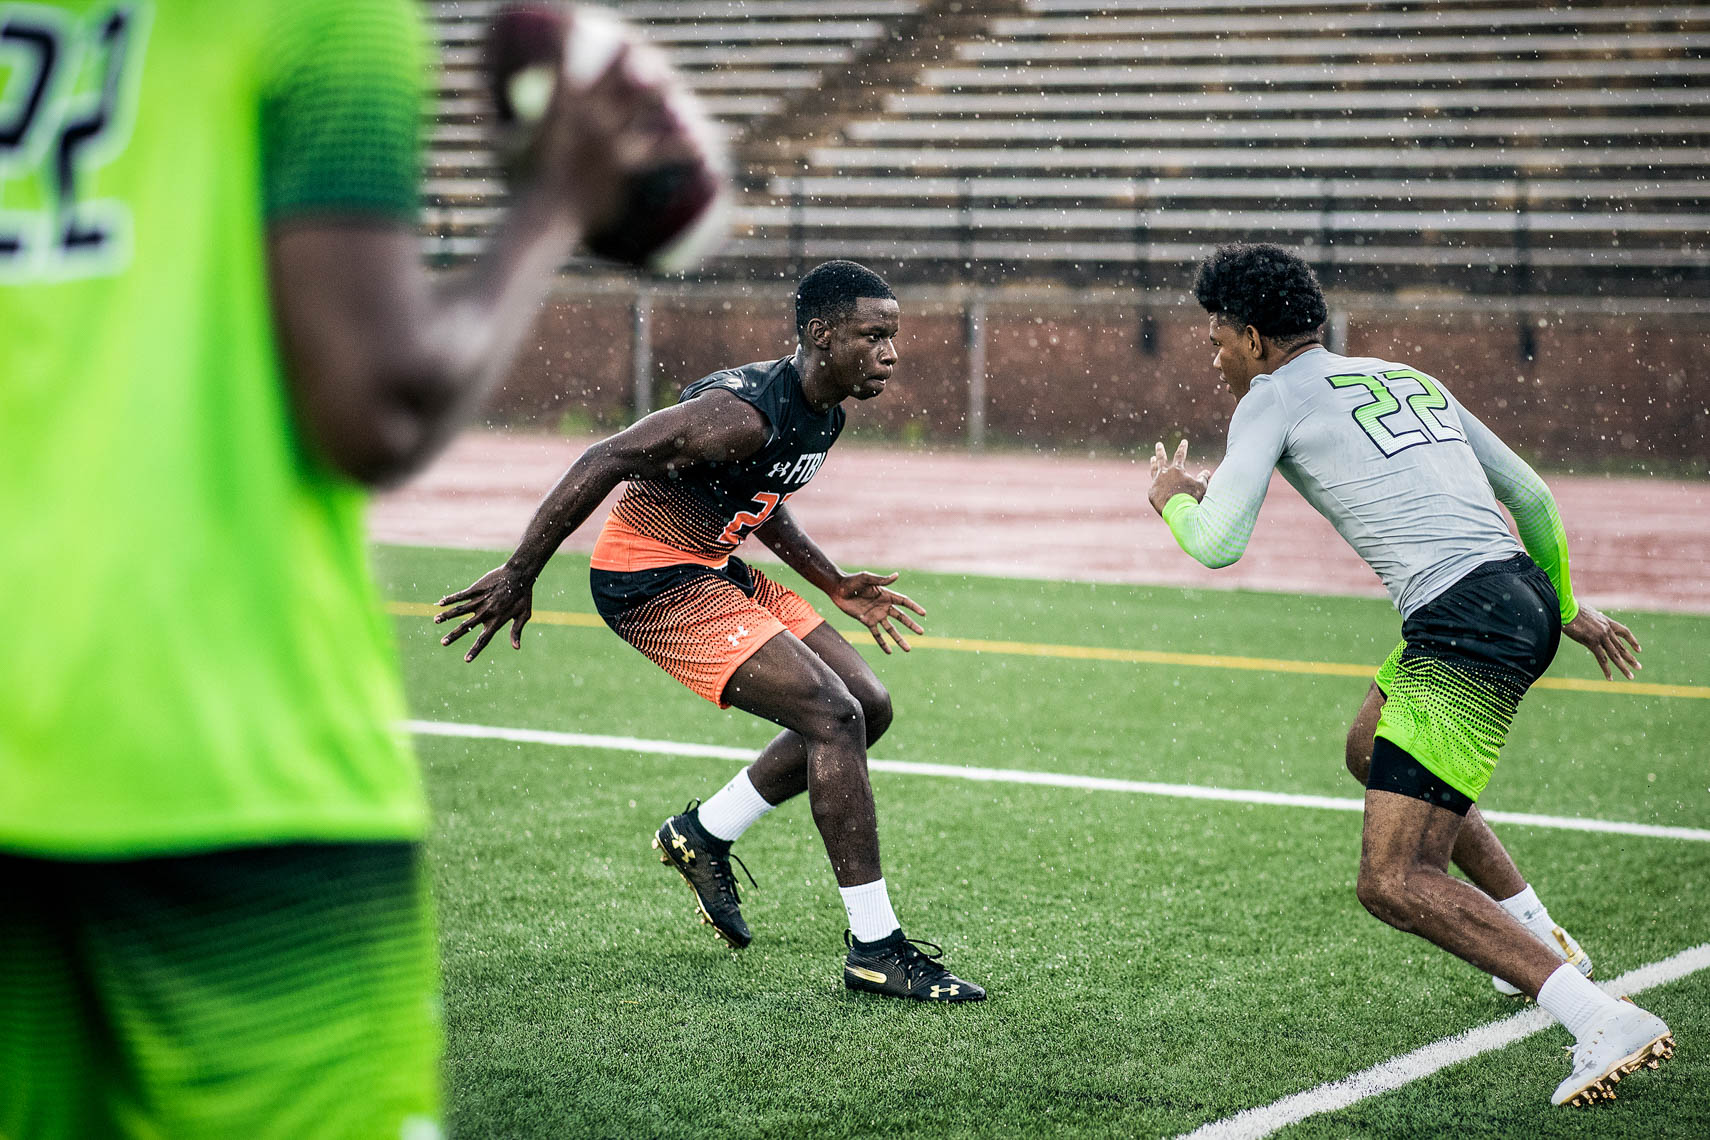 Under Armour 7 on 7 Football Team Sports